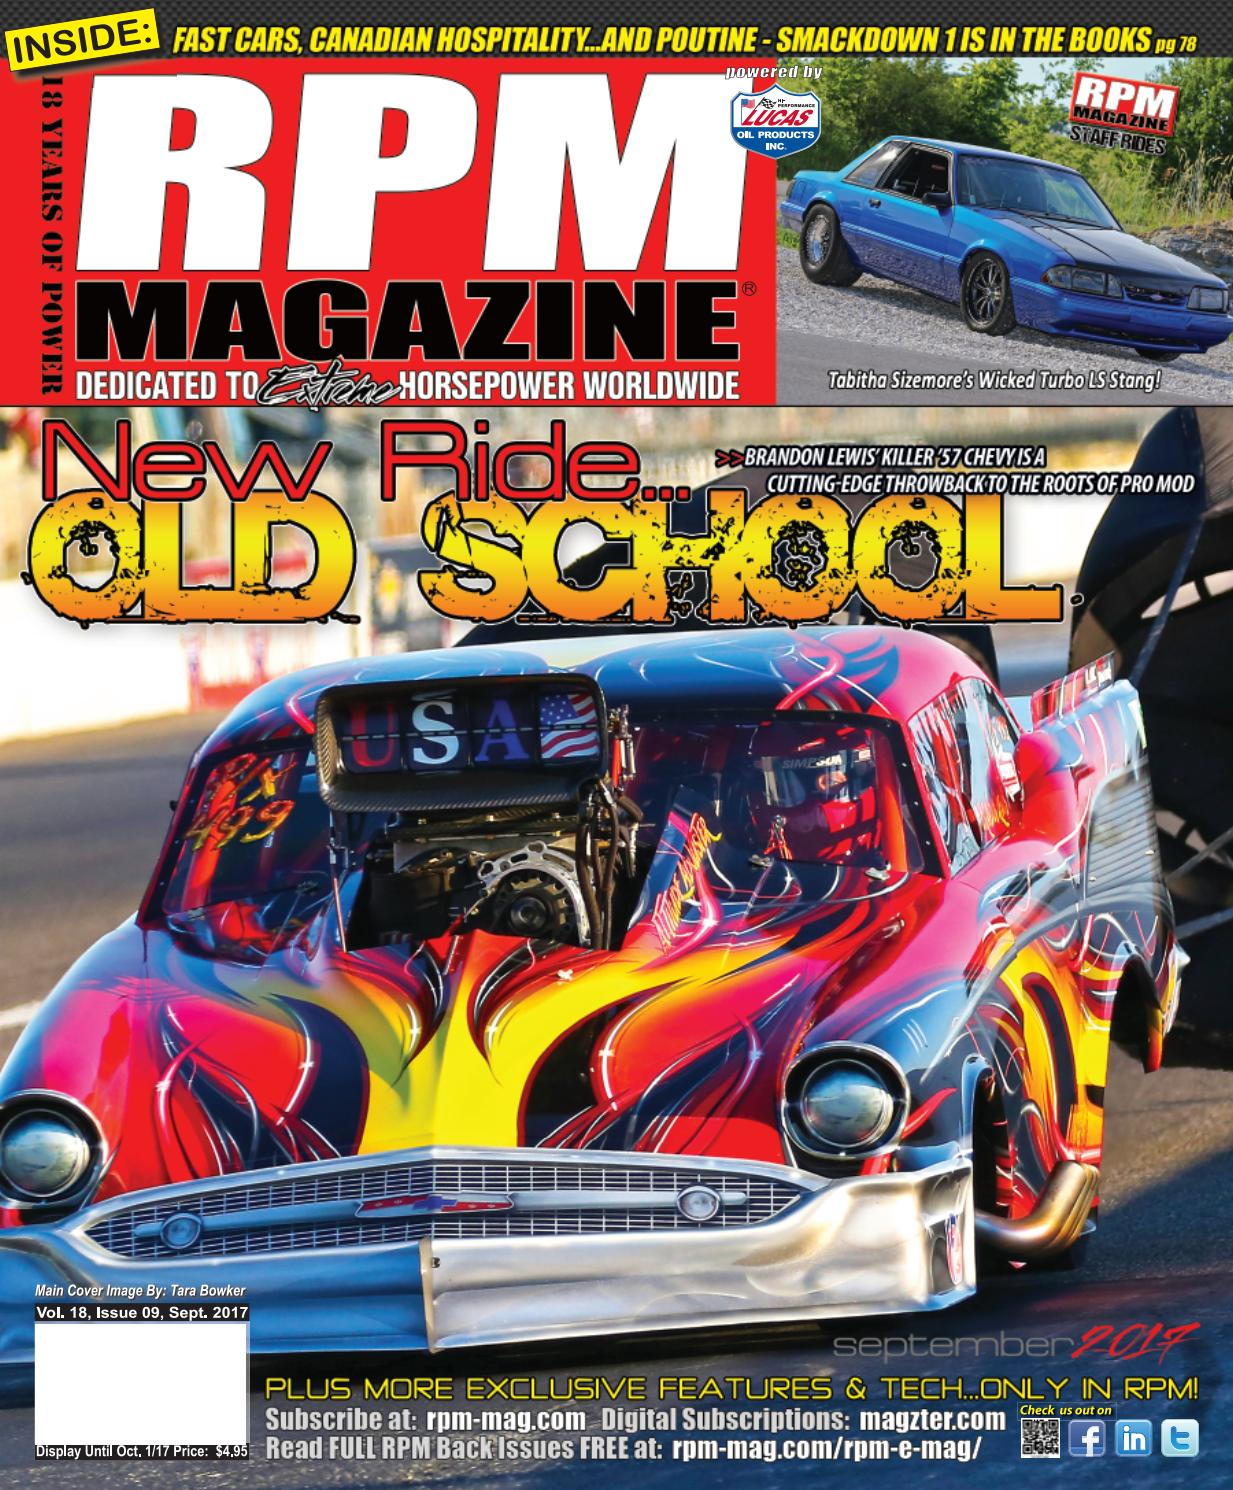 RPM Magazine September 2017 by RPM Magazine - issuu